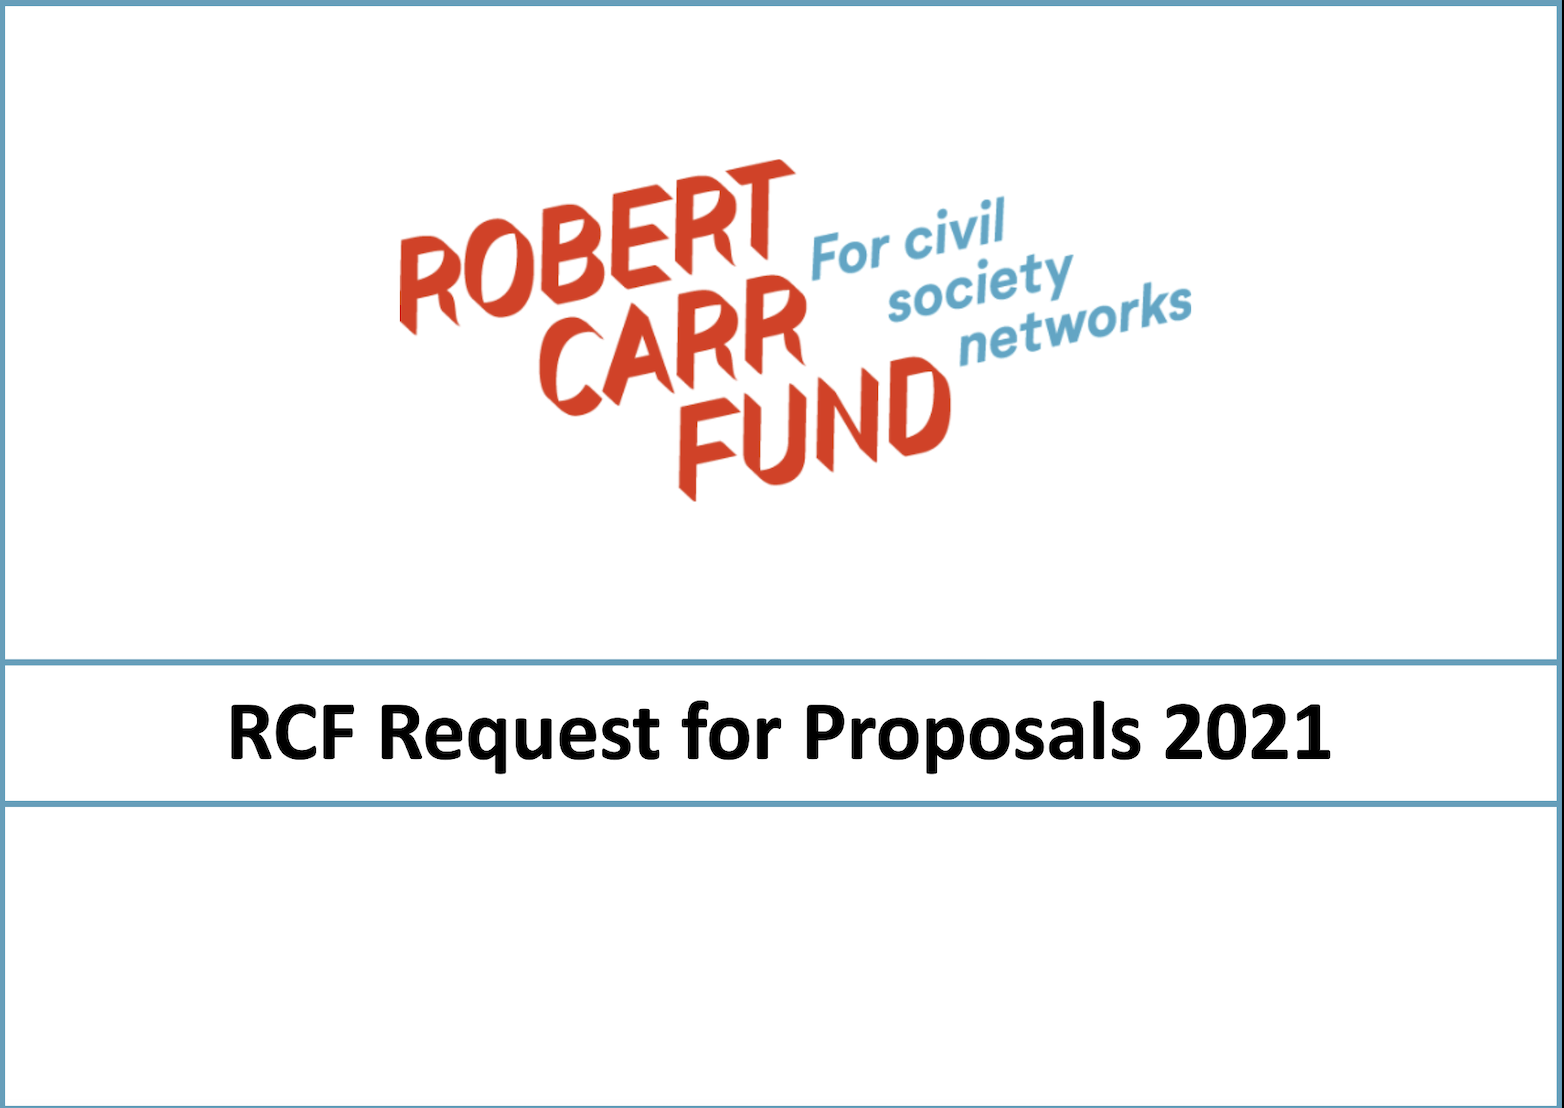 Robert Carr Fund Request for Proposals 2021